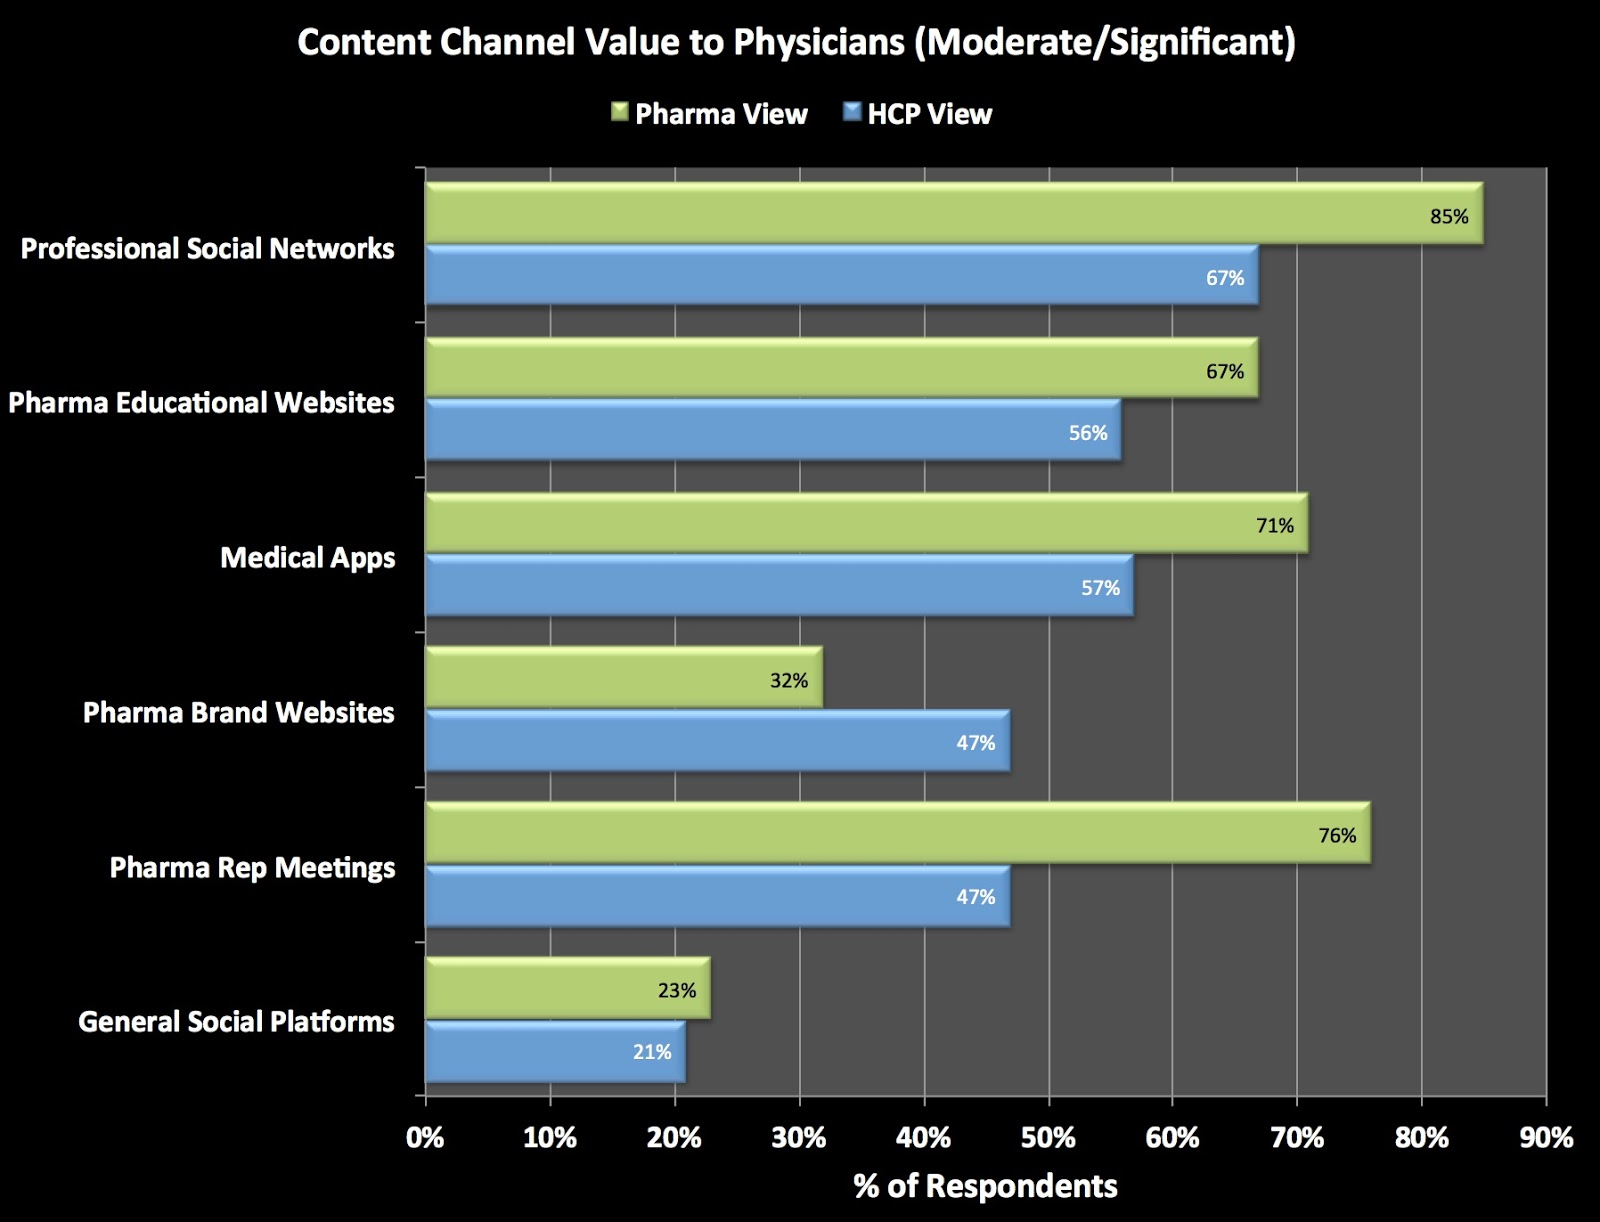 The Value of Medical Content Channels According to HCPs vs Pharma Professionals